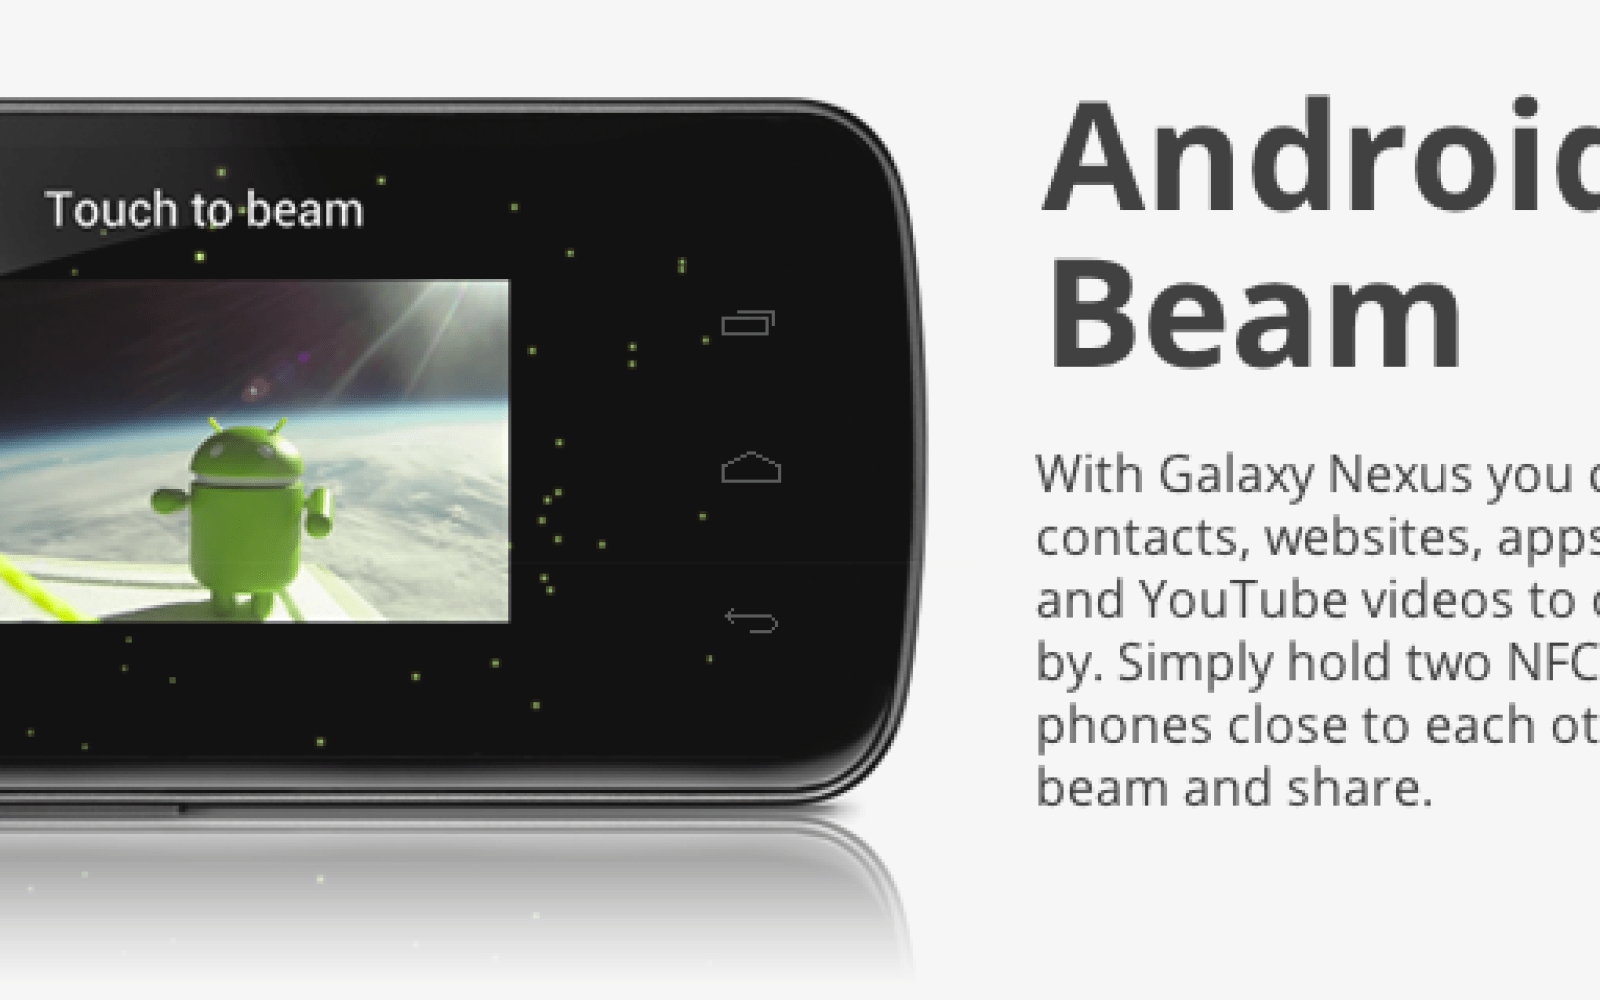 Google unveils Android Beam, uses NFC technology to transfer